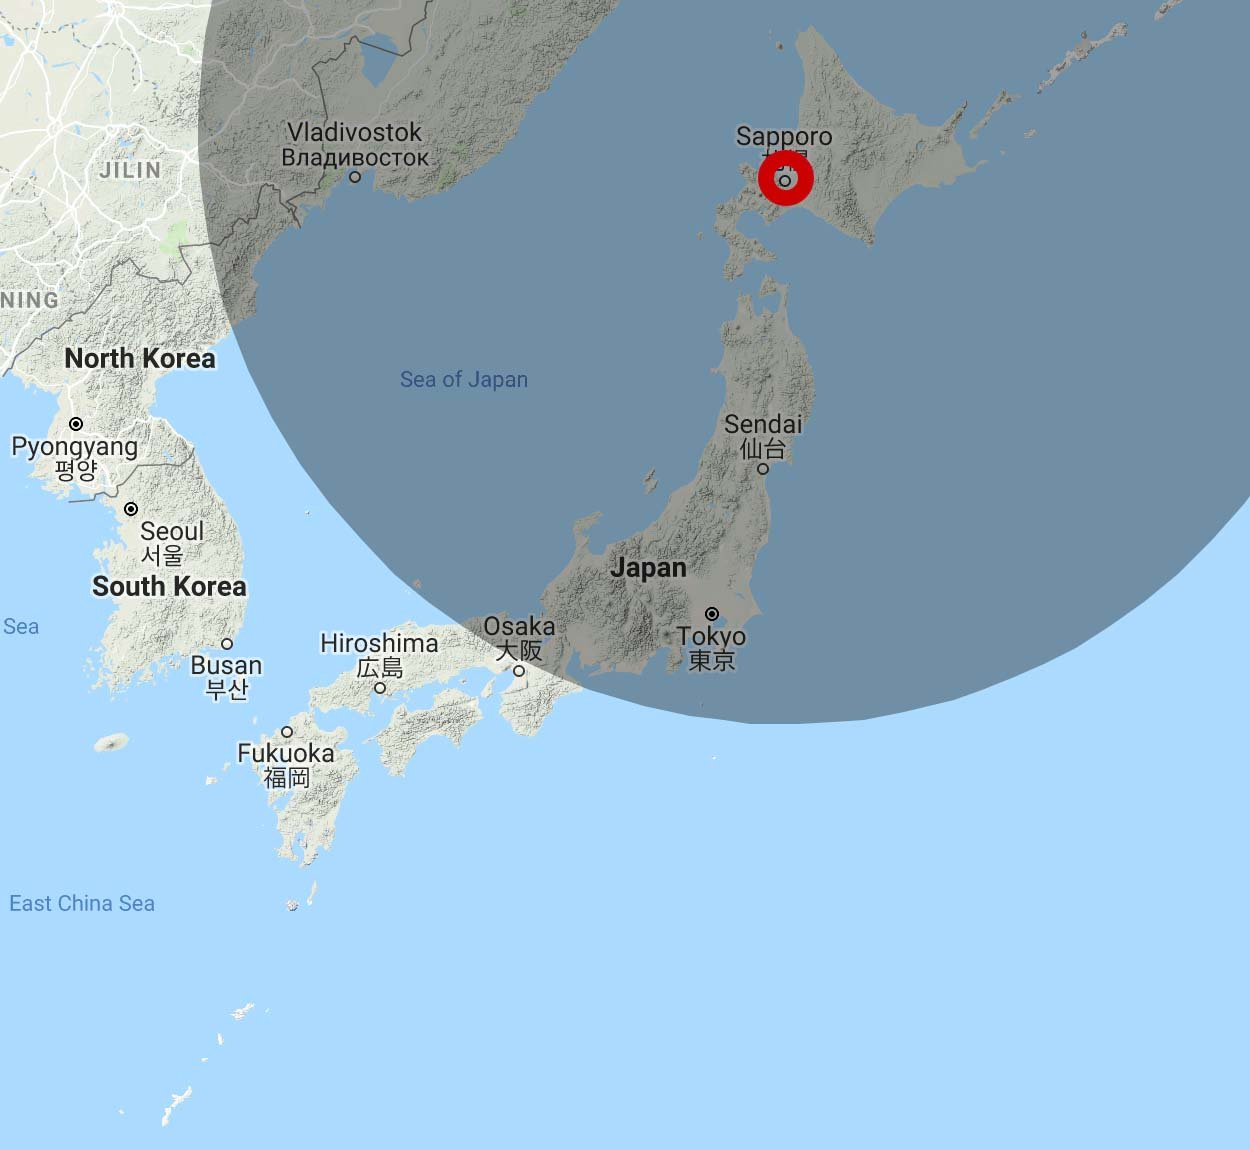 JAL 4,500 Avios Range from Sapporo